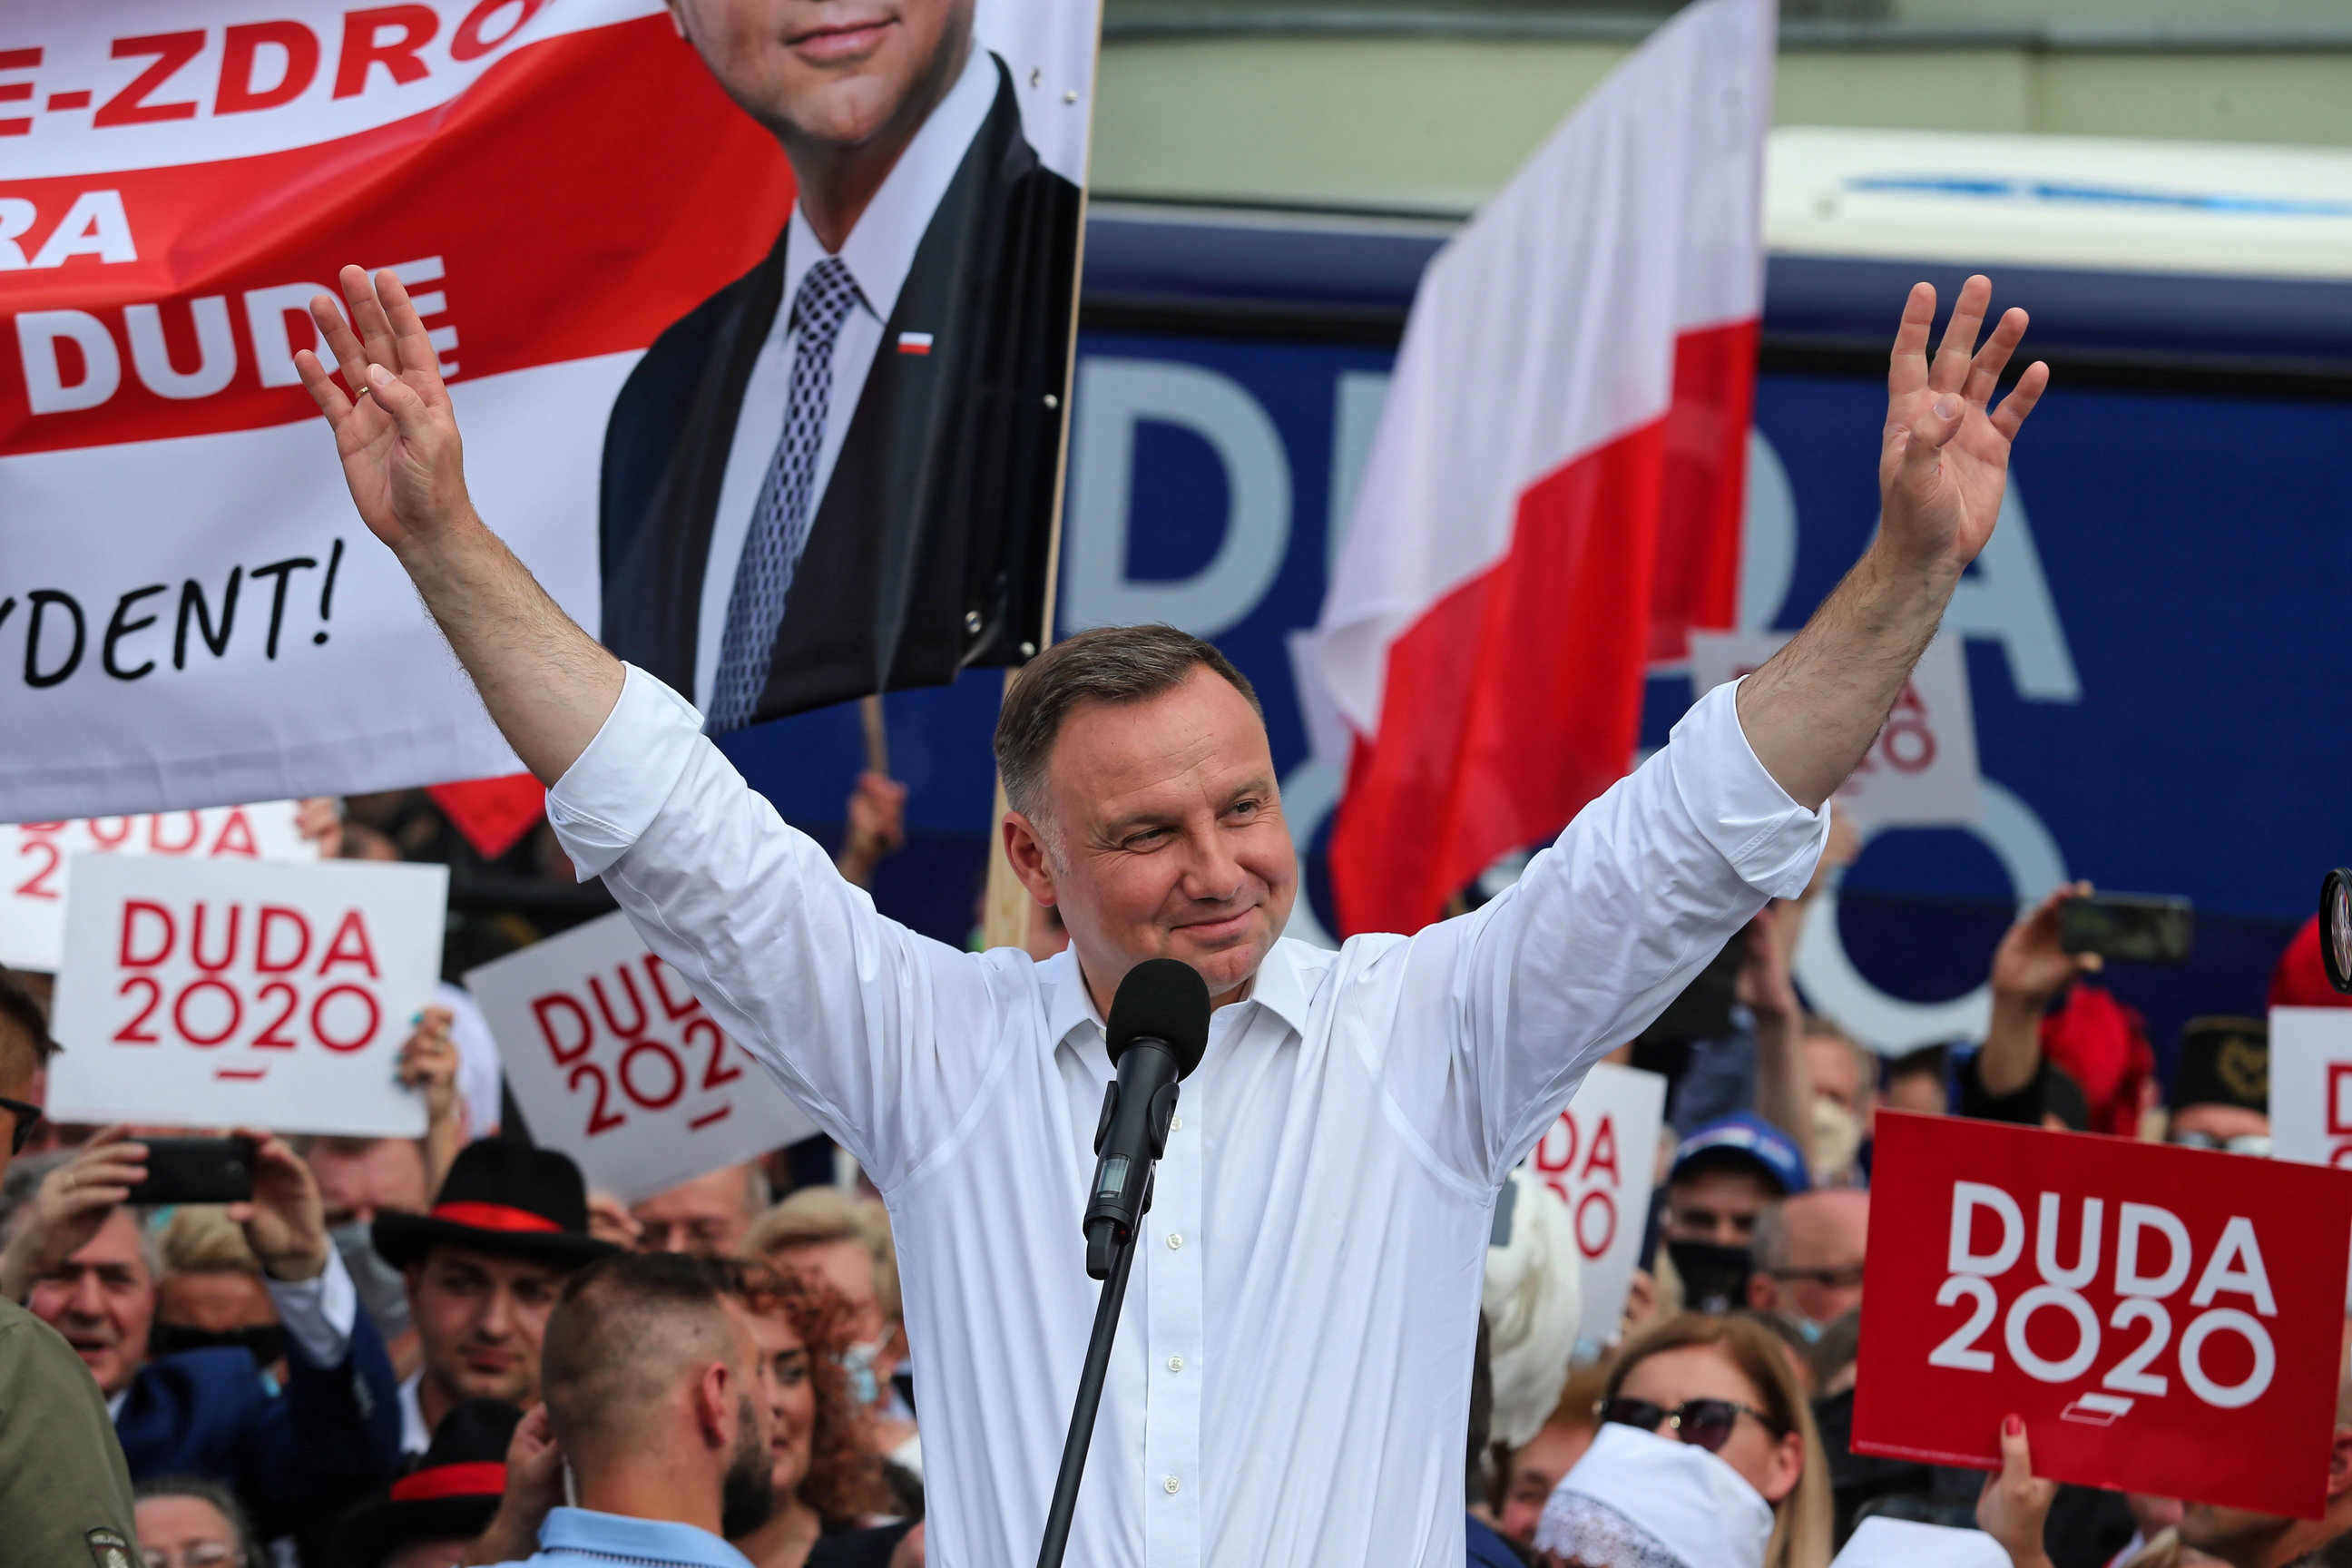 andzej duda poland election